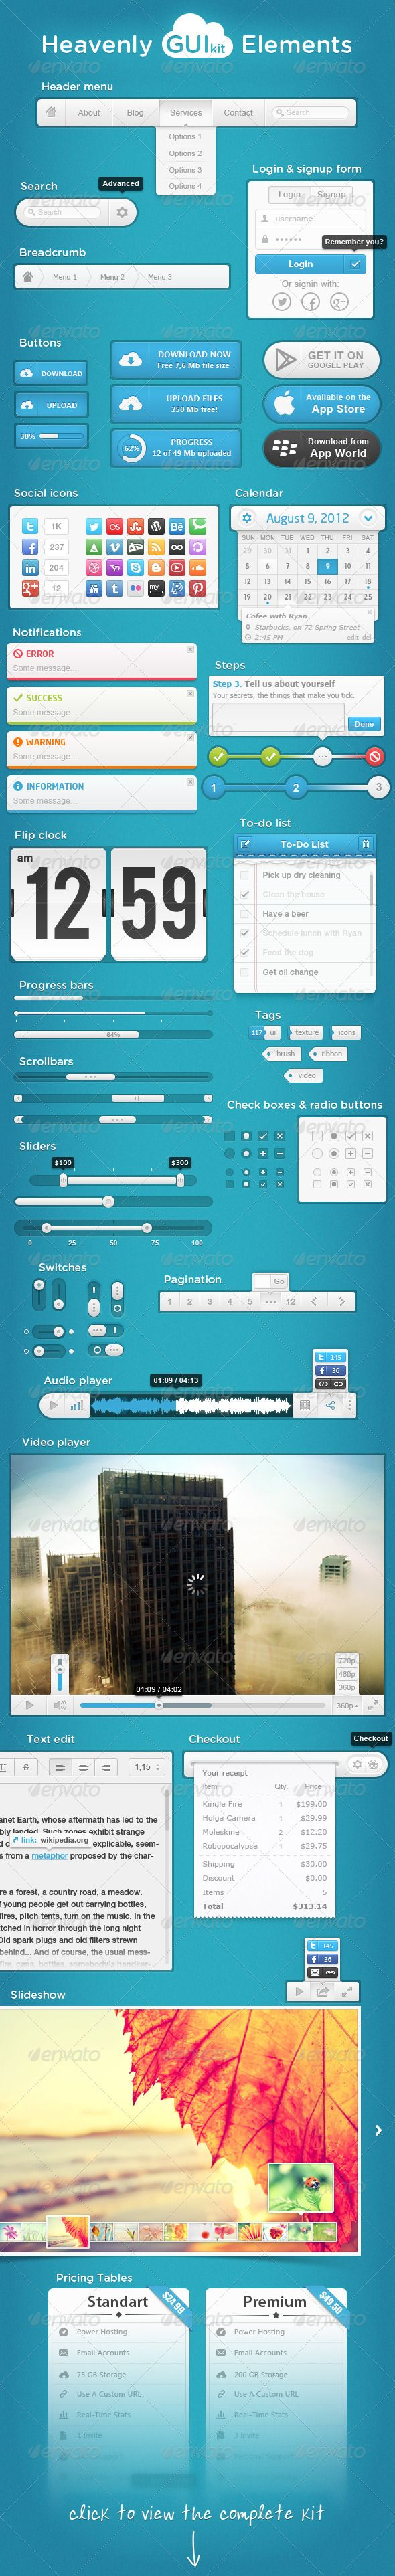 Heavenly GUI Kit Elements - GraphicRiver Item for Sale